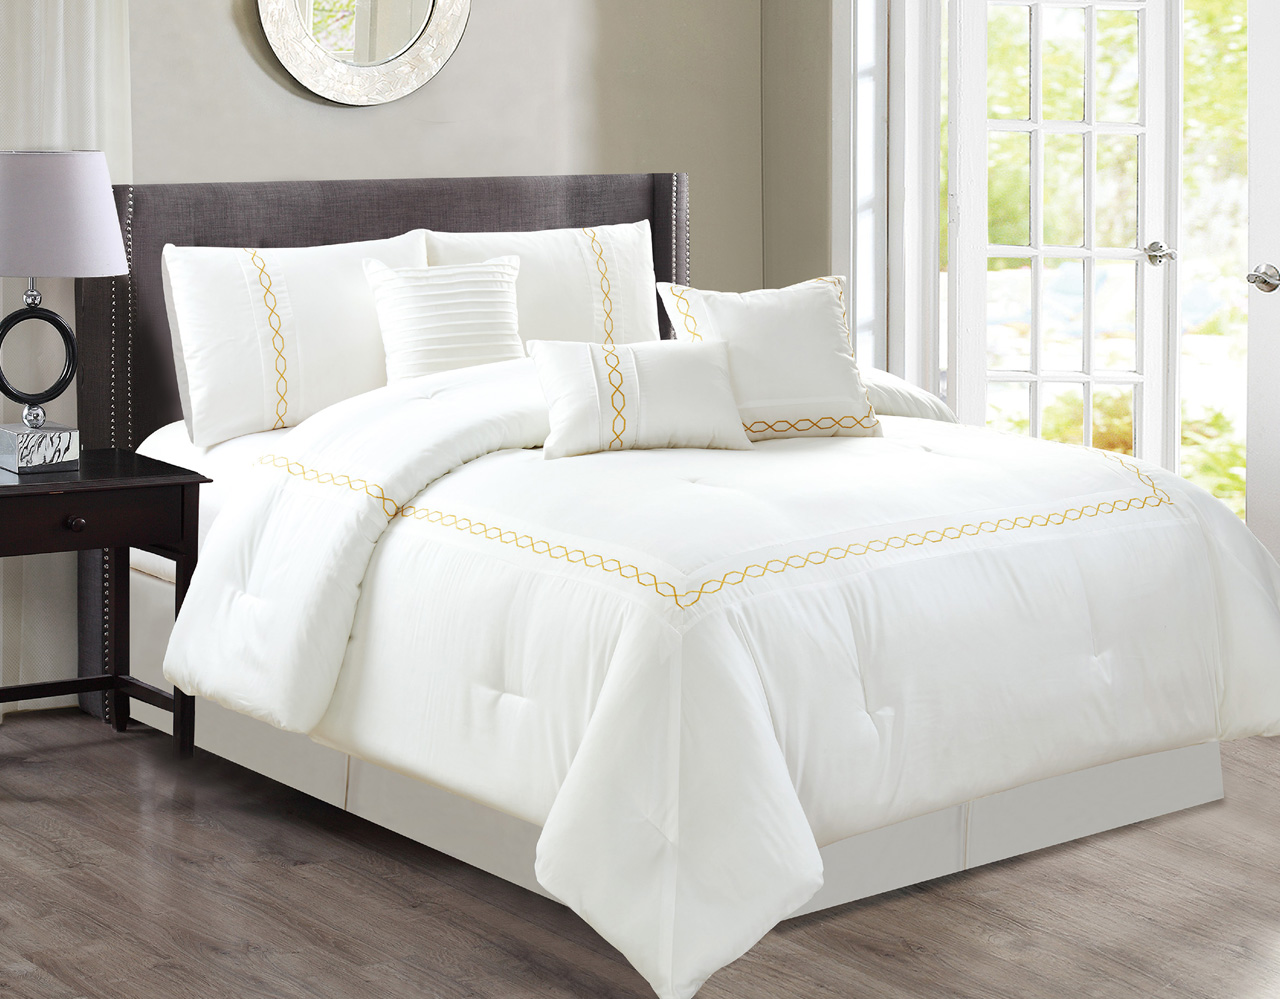 sidney 6 7 comforter set in white bed bath amp beyond 7 peace zamella white comforter set 997